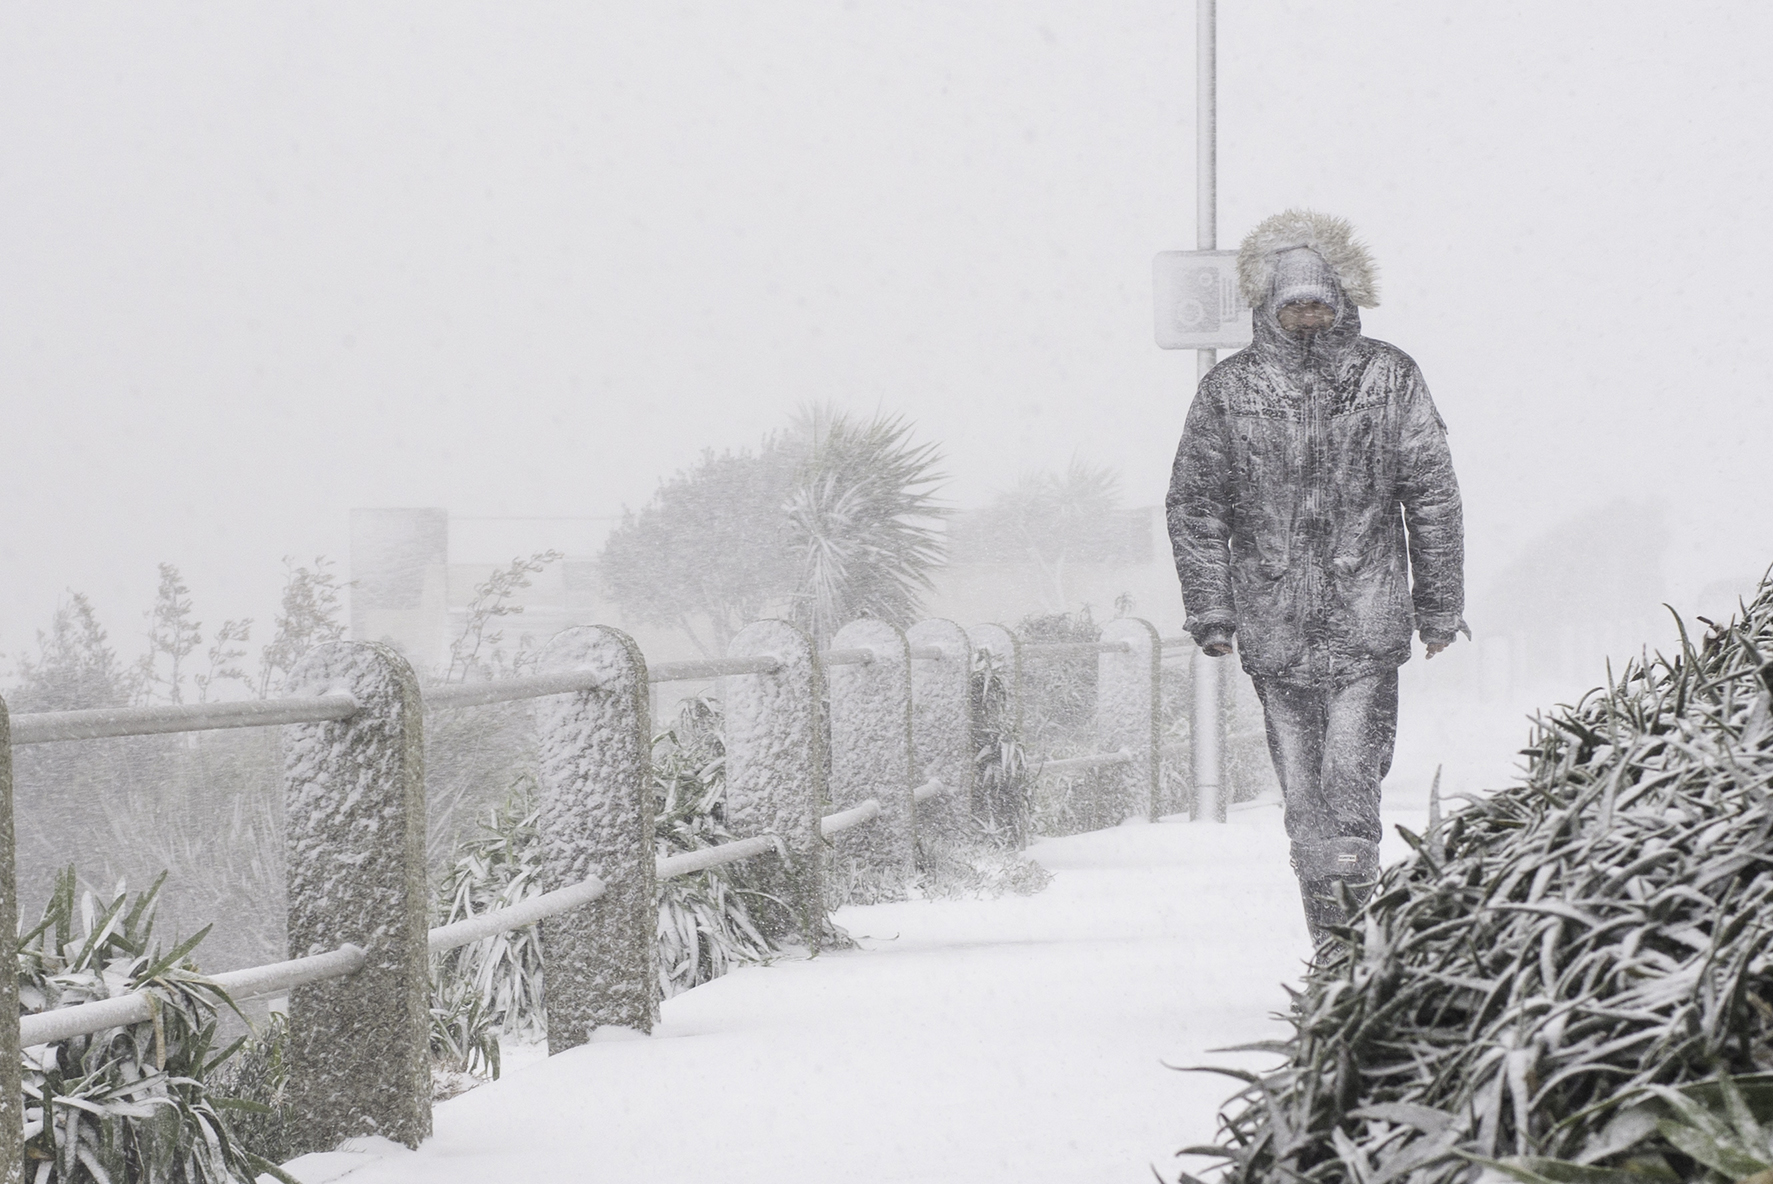 Walking on the seafront at Falmouth in the snow. 28 February 2018